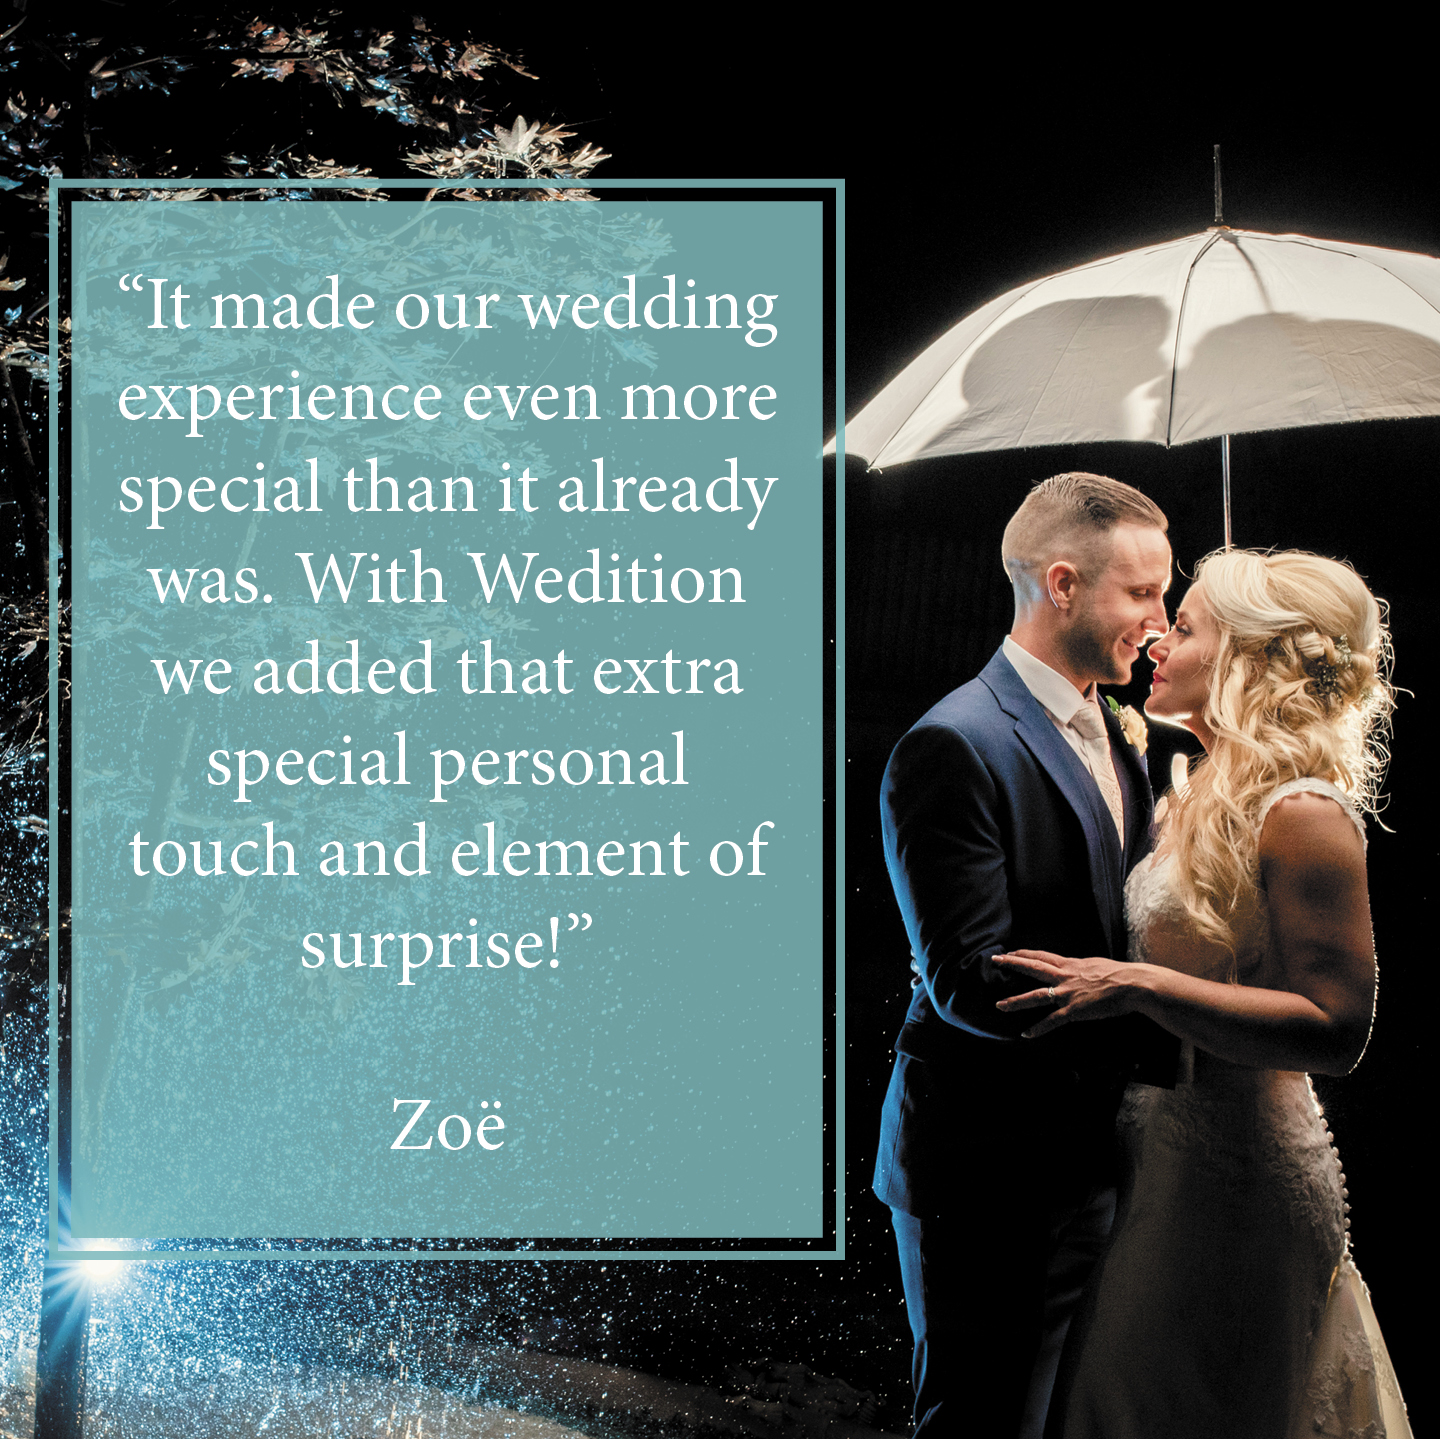 Make your wedding more special